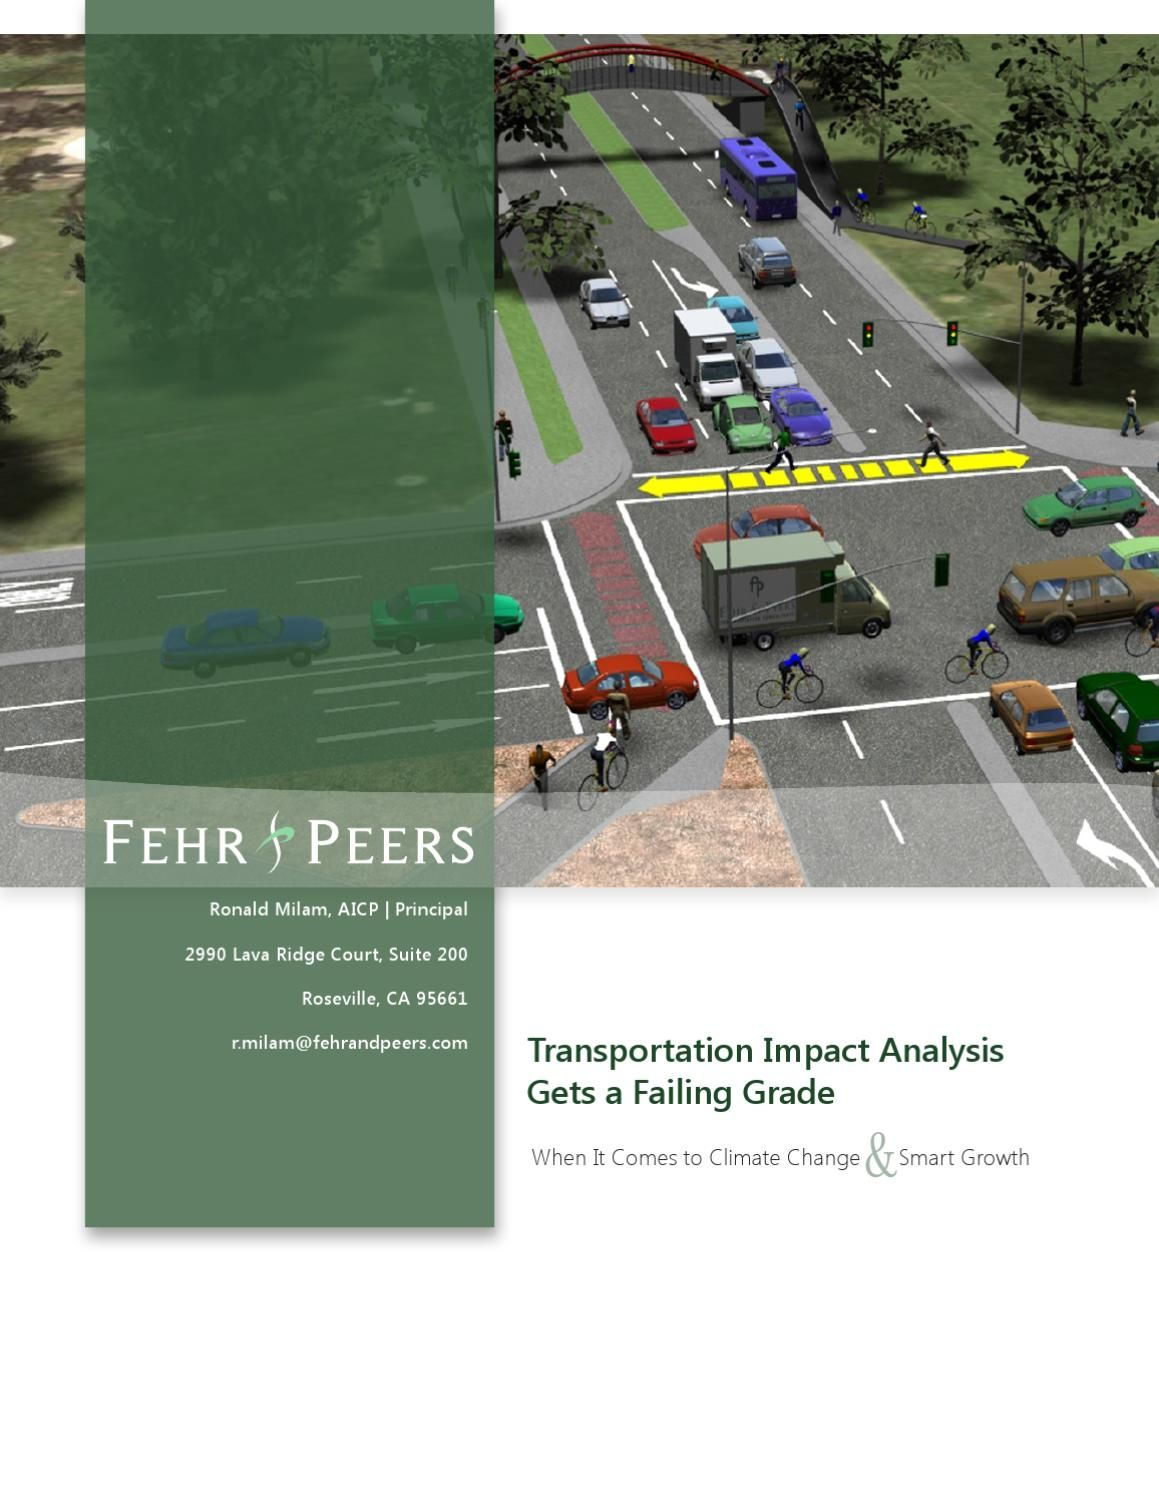 Transportation Impact Analysis Gets A Failing Grade  Transportation